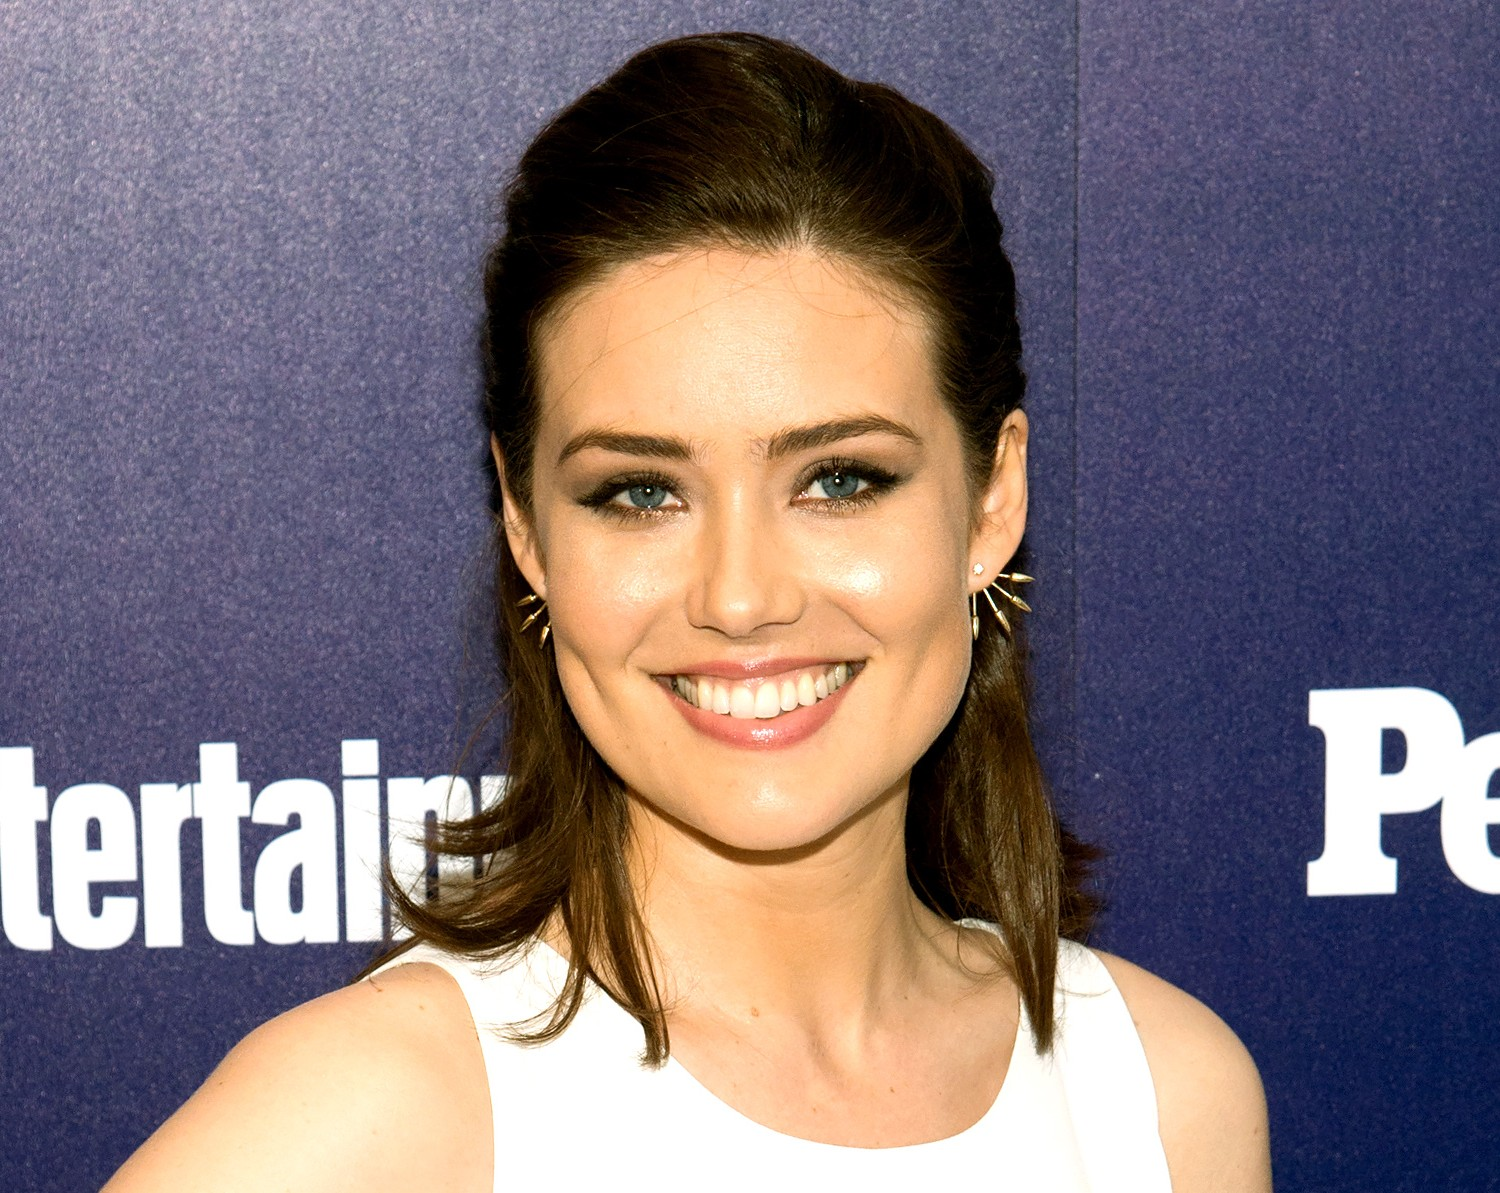 Pics Megan Boone nude (41 photo), Topless, Hot, Twitter, bra 2006